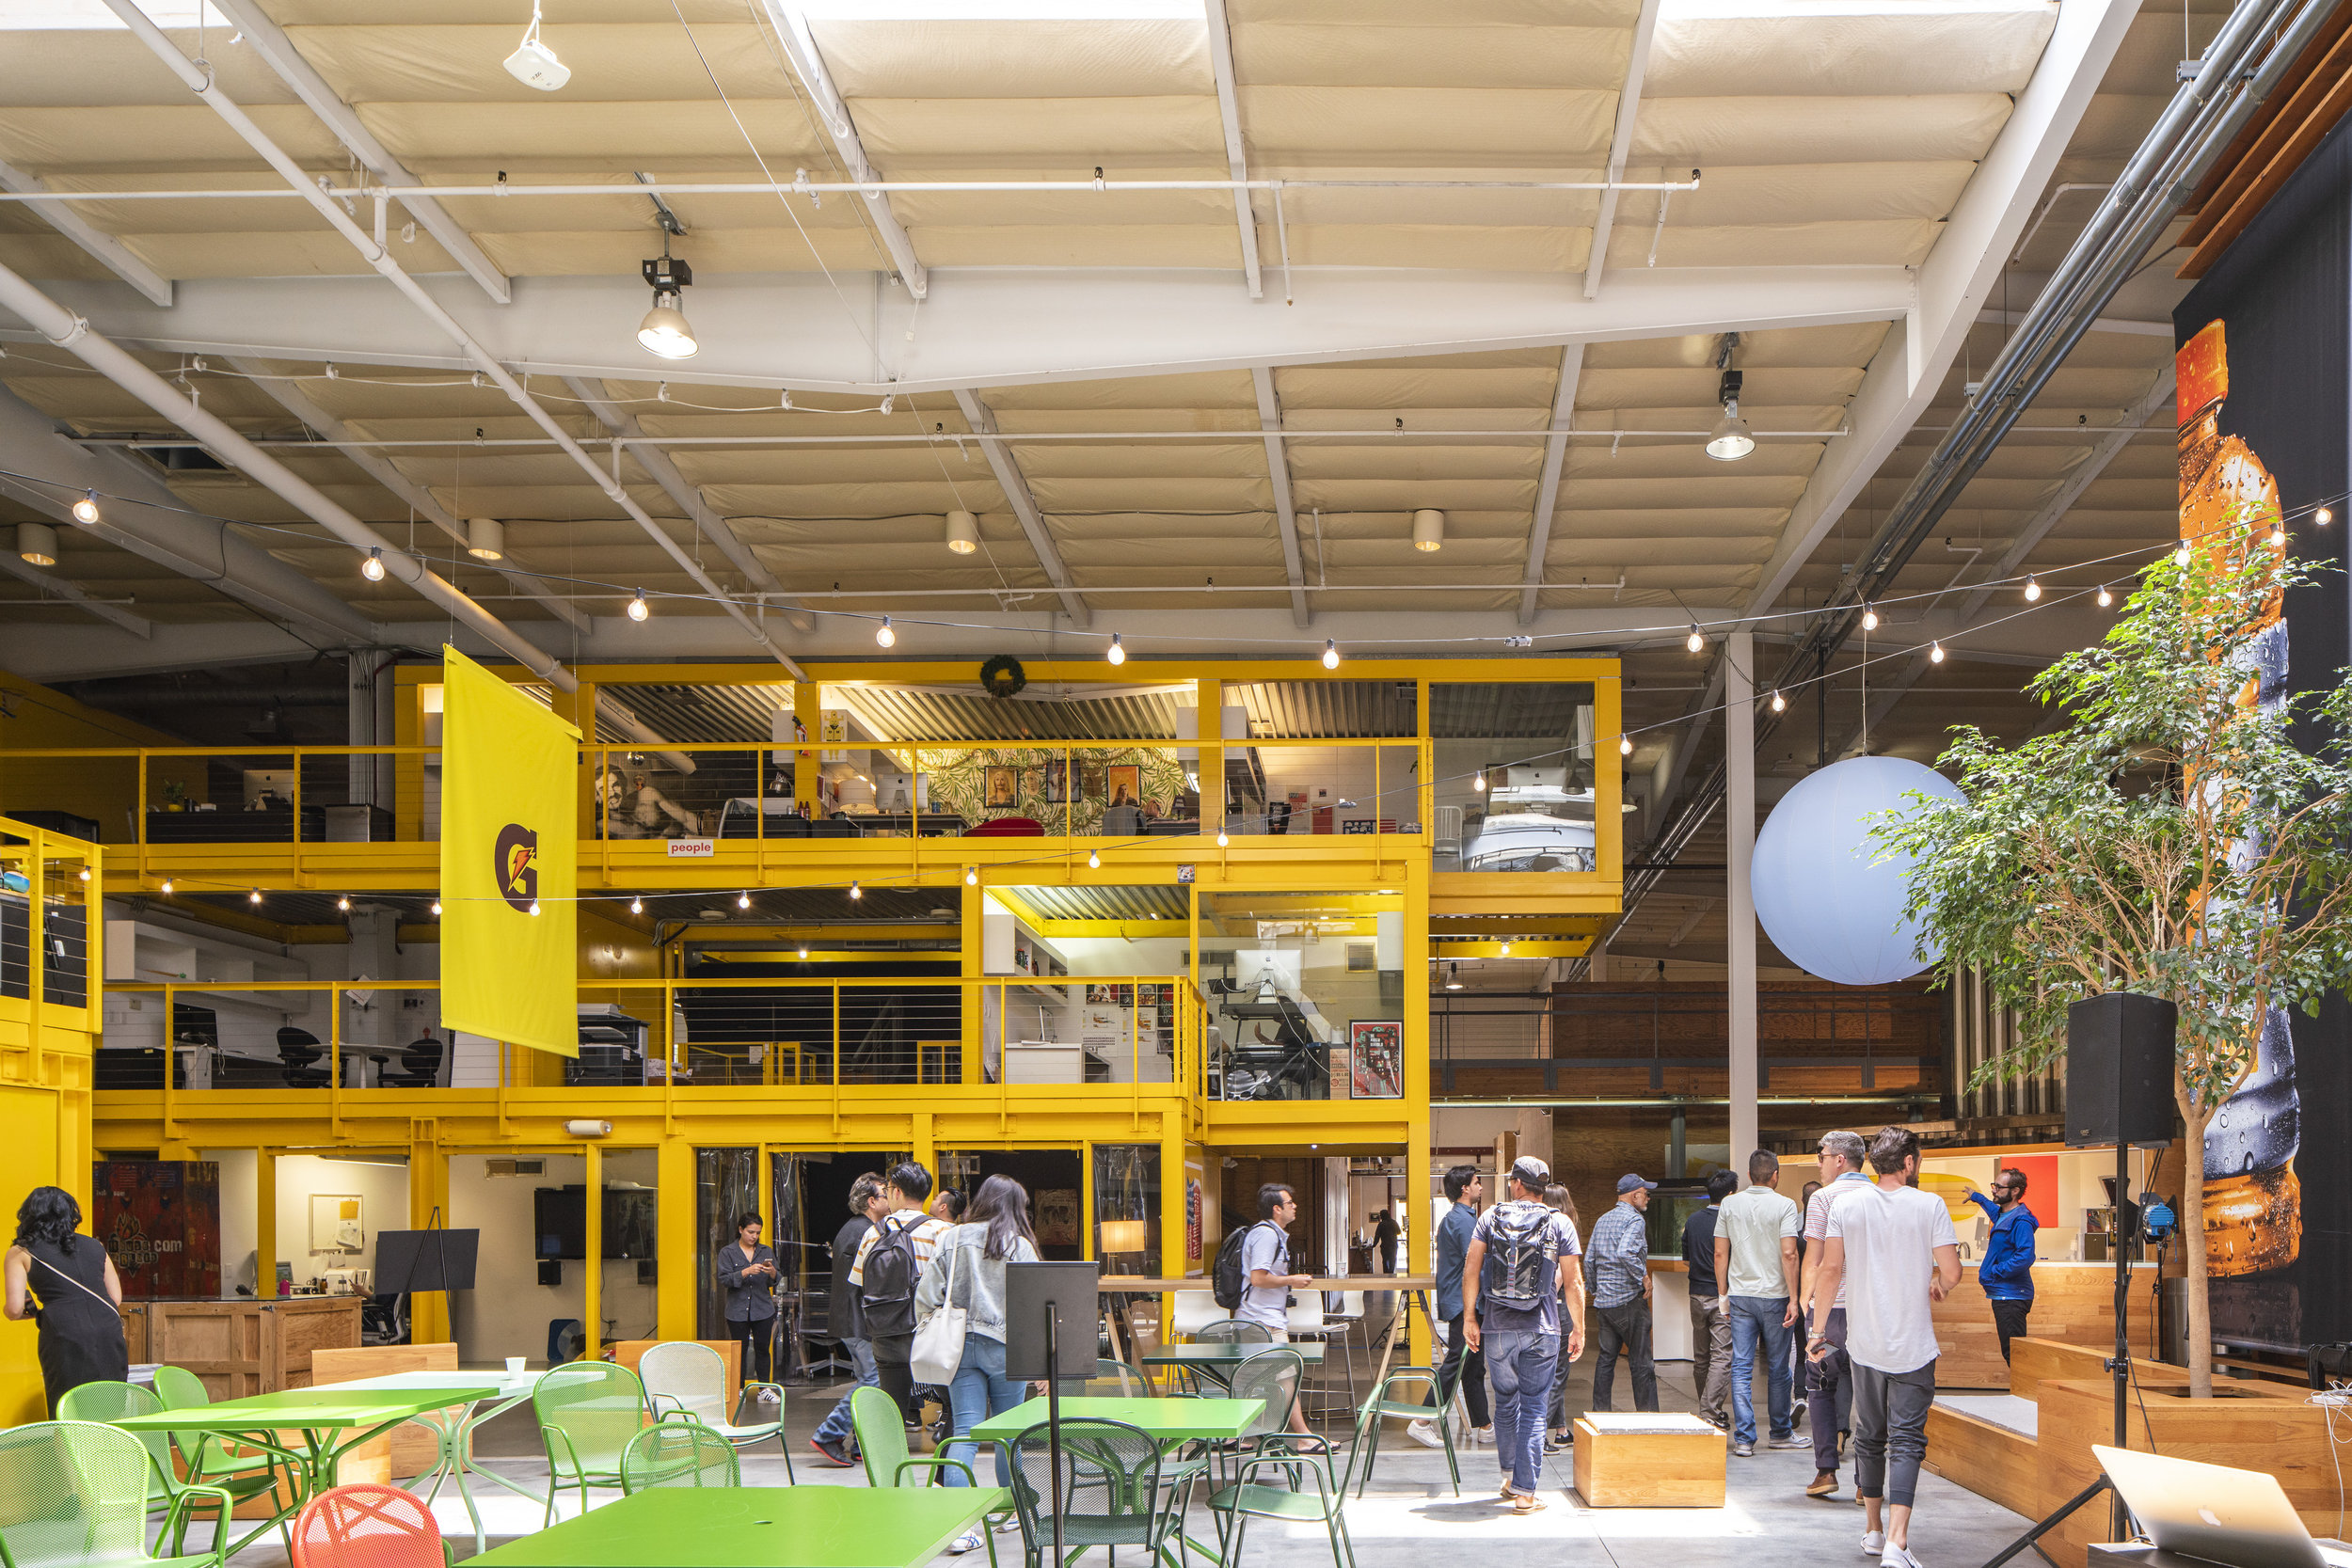 Copy of TBWA\Chiat\Day Studio Tour with Spatial Affairs Bureau